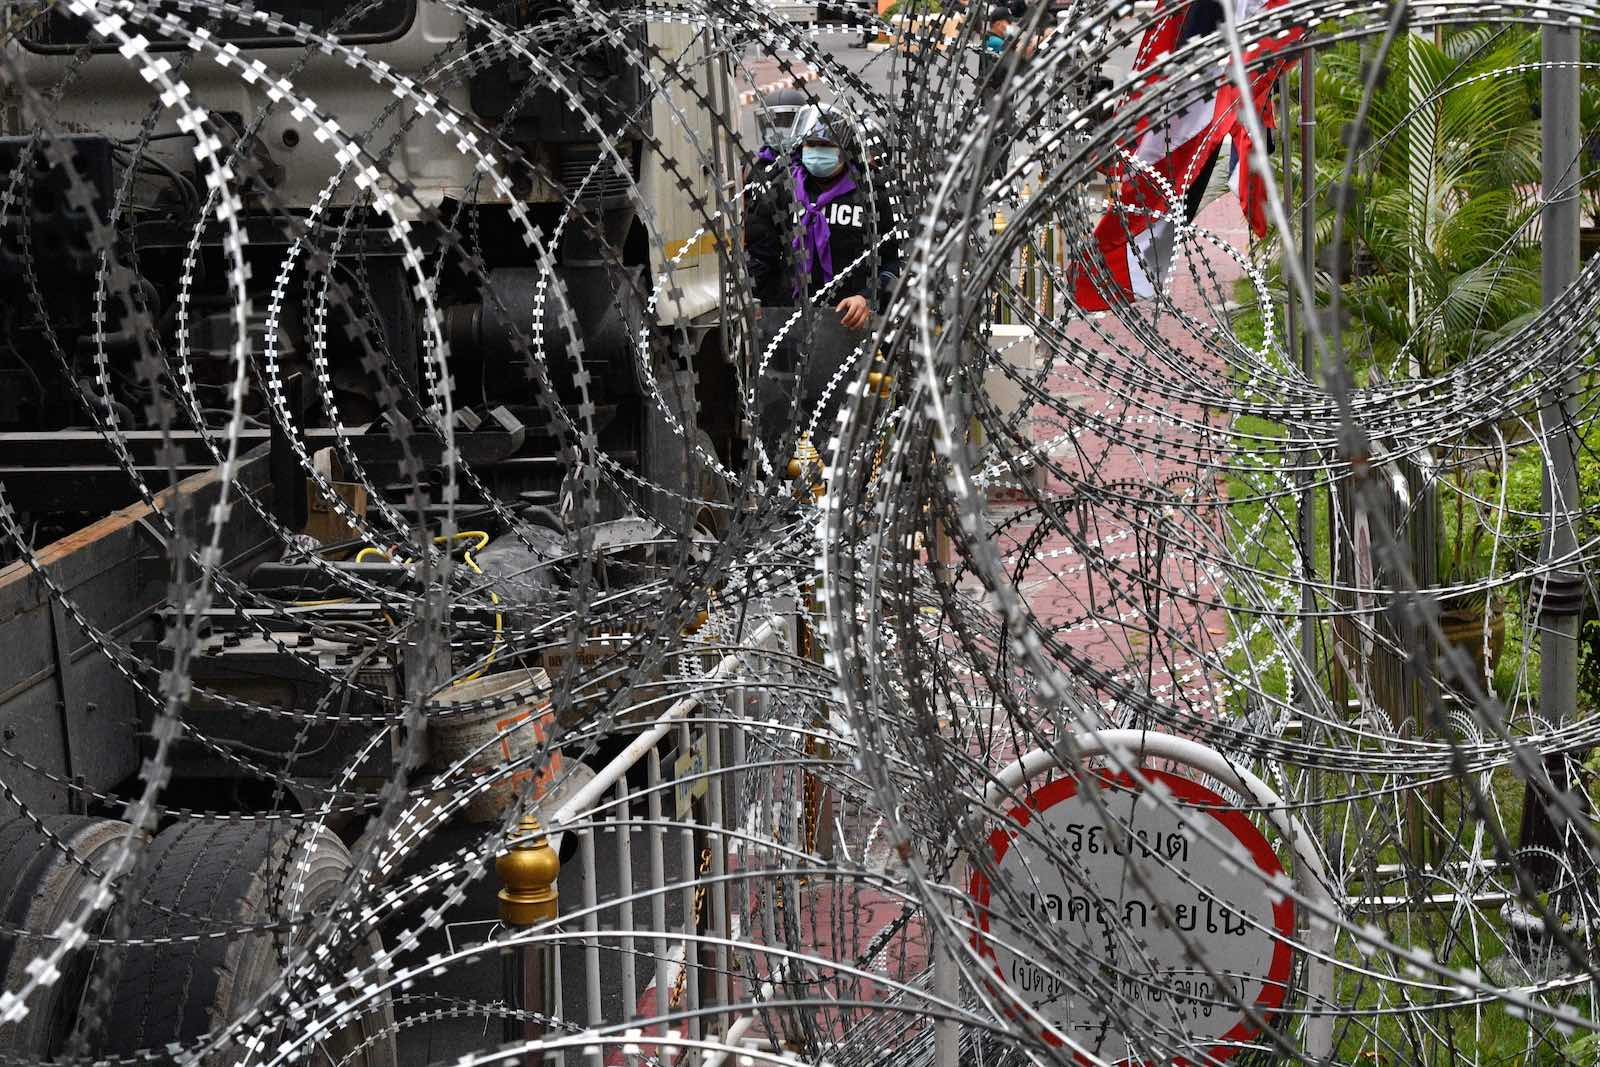 Police stand behind coils of barbed wire ahead of expected pro-democracy protests in Bangkok on 18 November (Mladen Antonov/AFP via Getty Images)